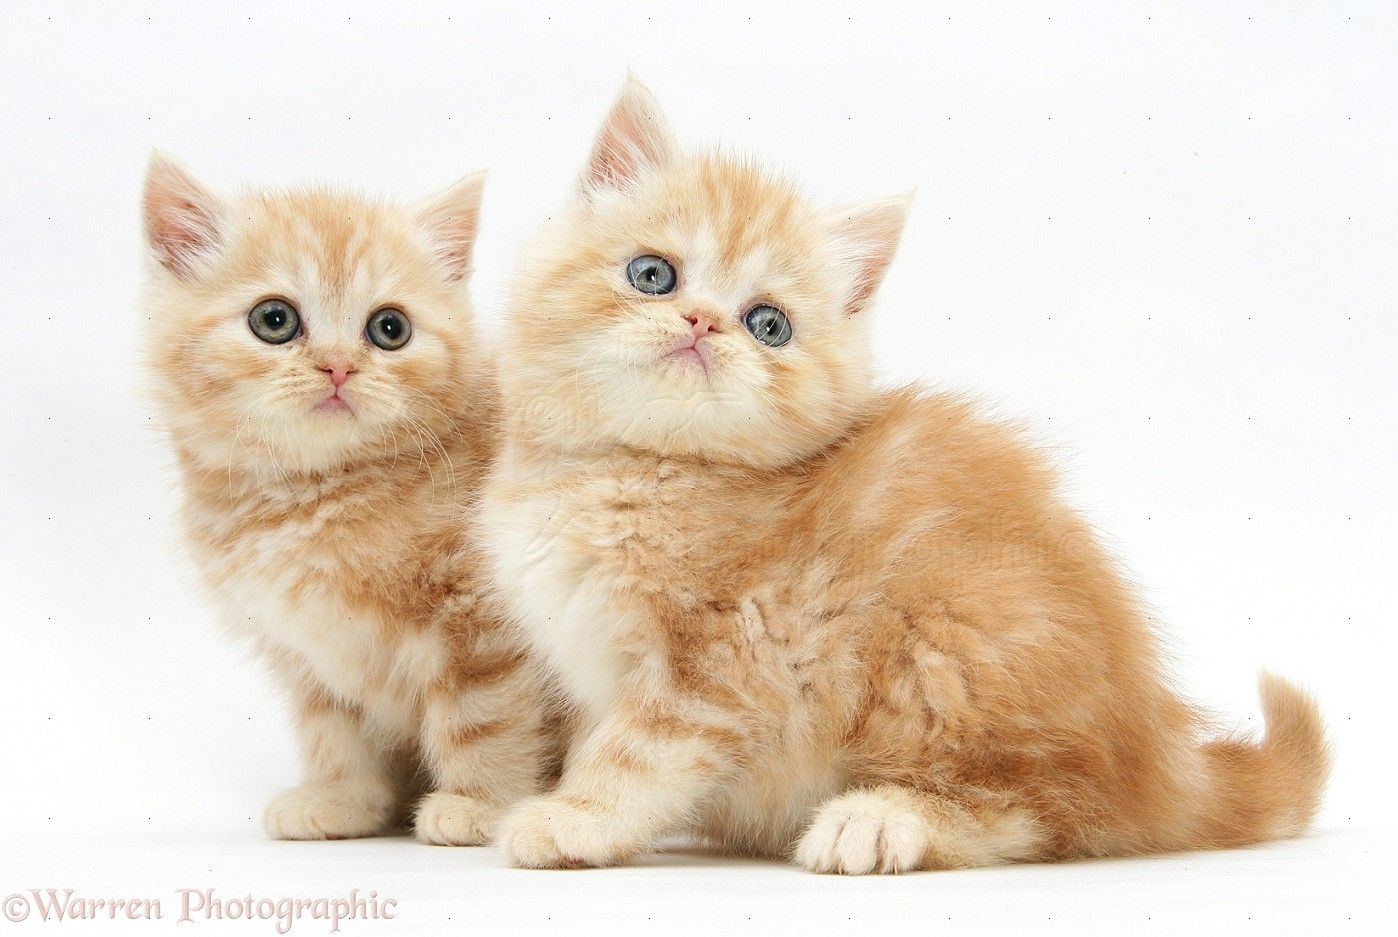 WP Ginger kittens catfacts More fact about cat at